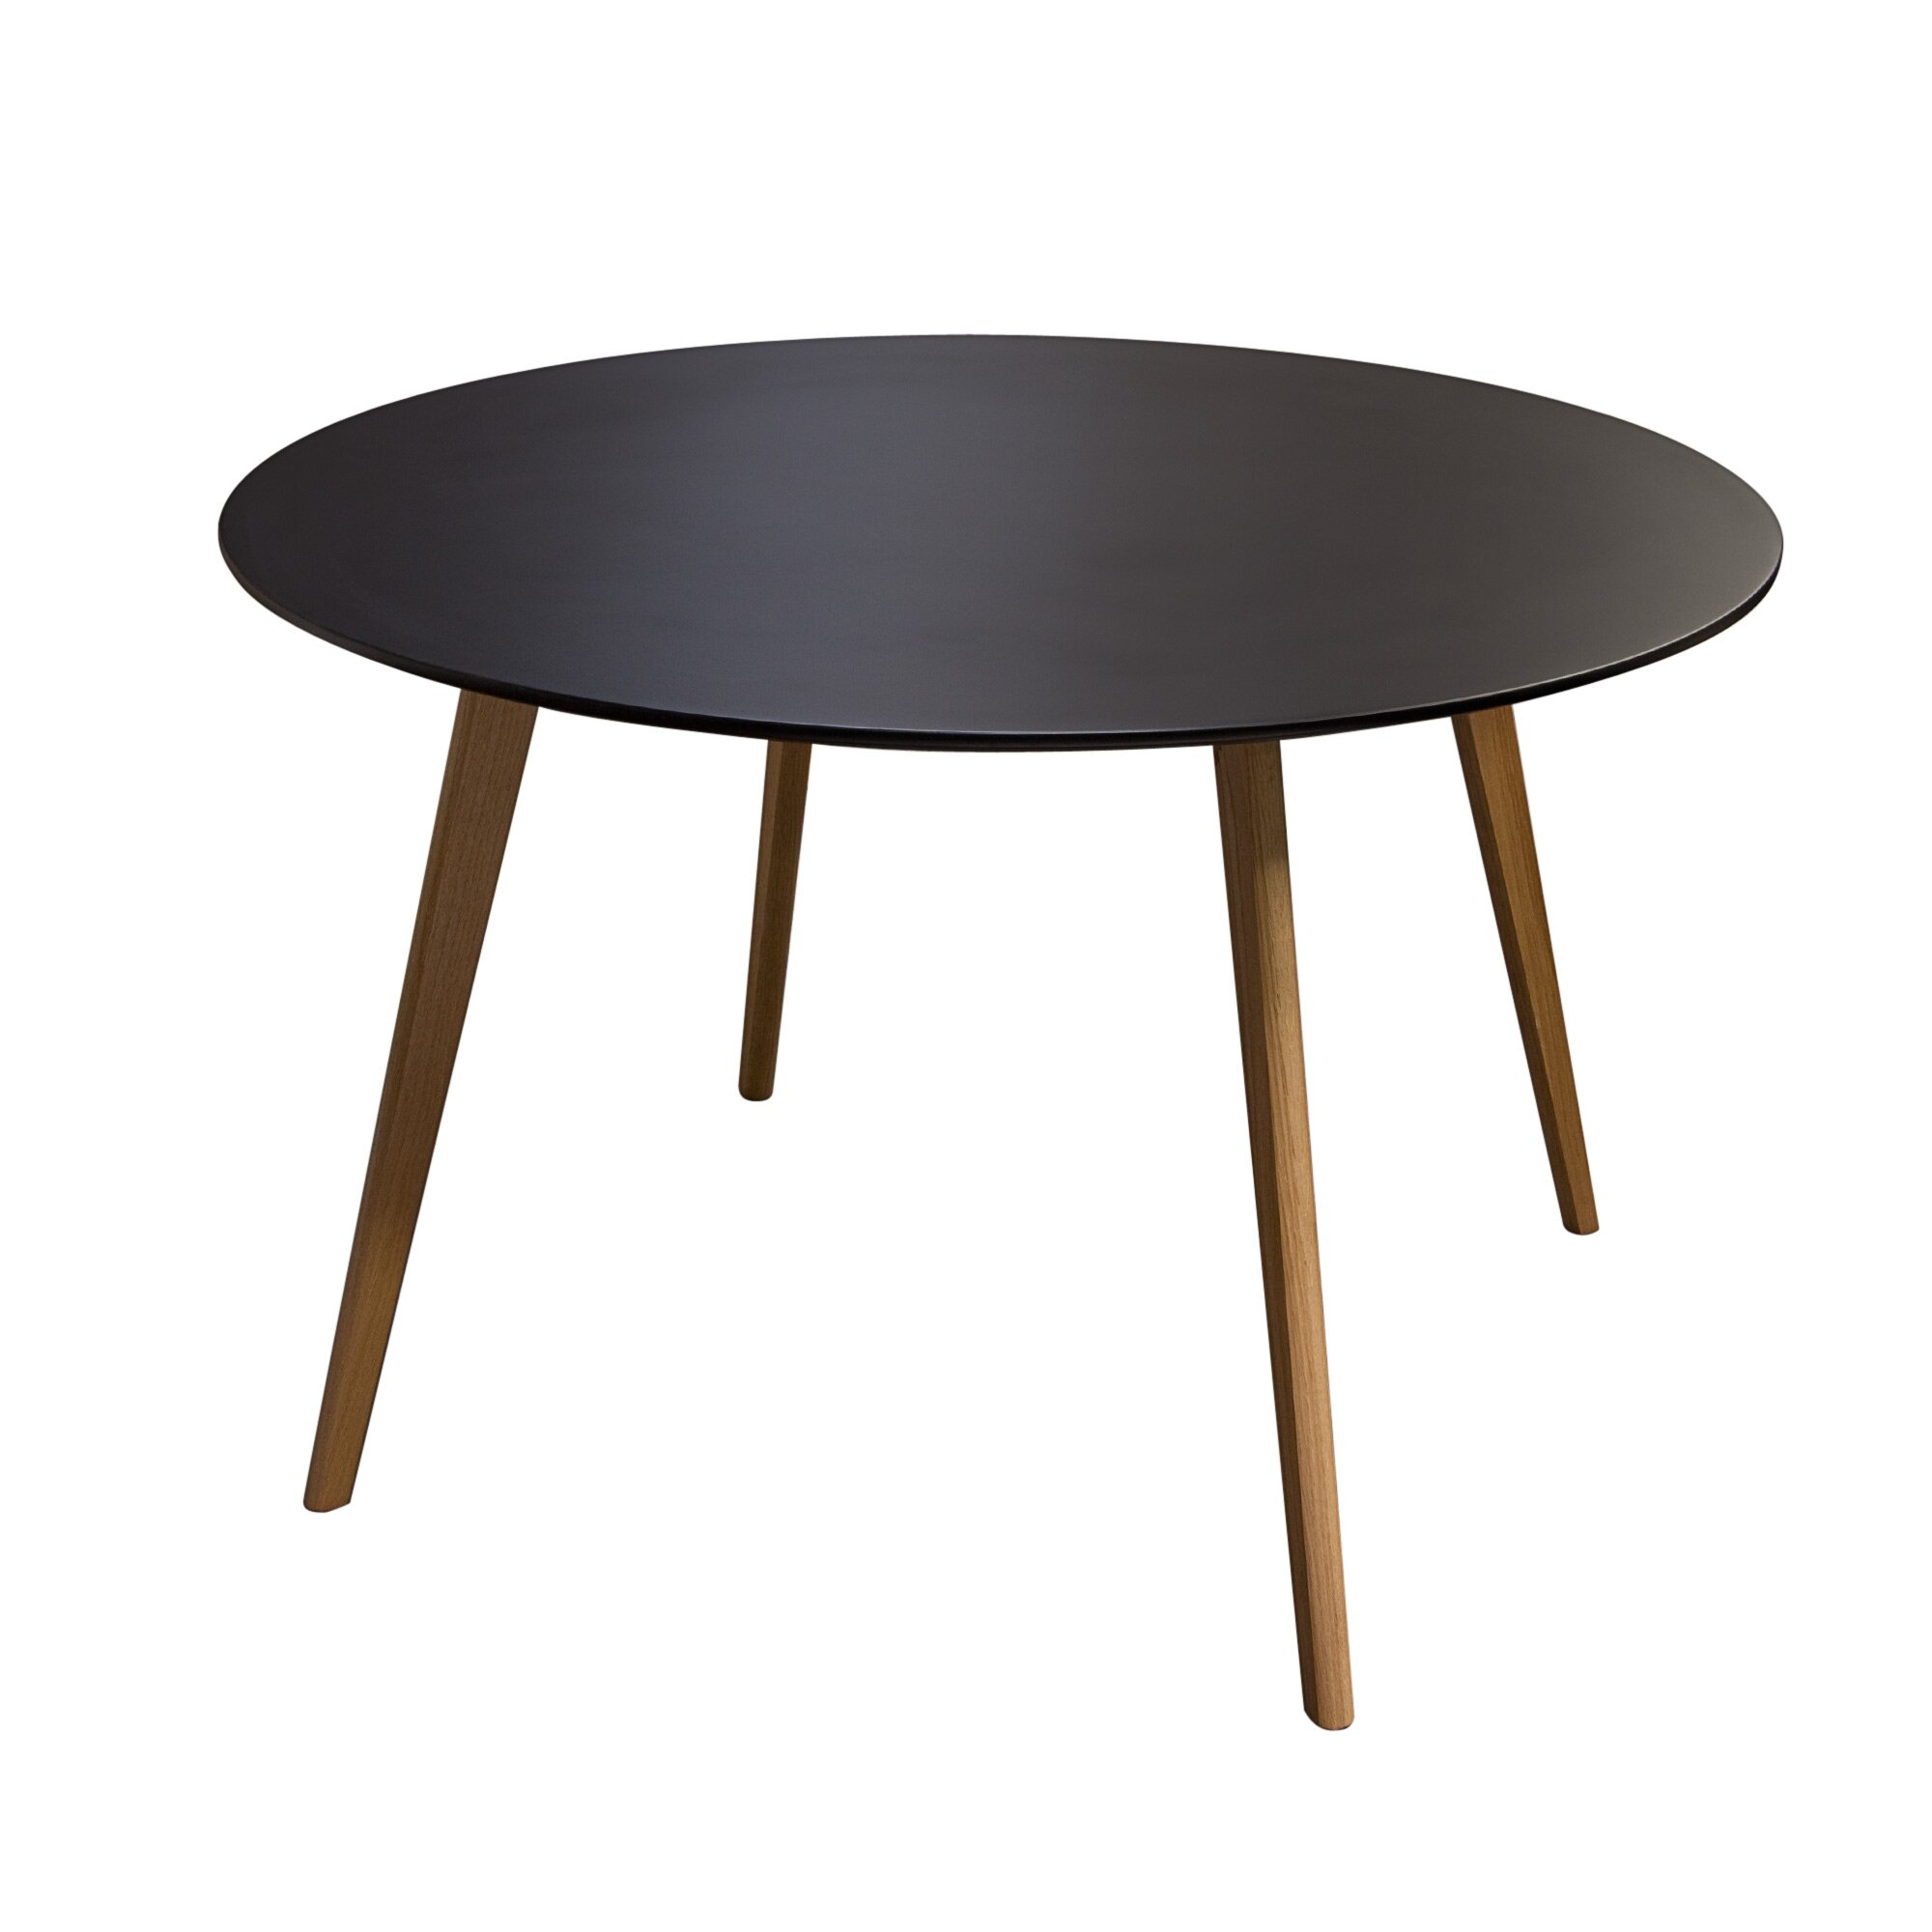 Contemporary Round Dining Table For 6 Modern Kitchen Dining Tables Allmodern